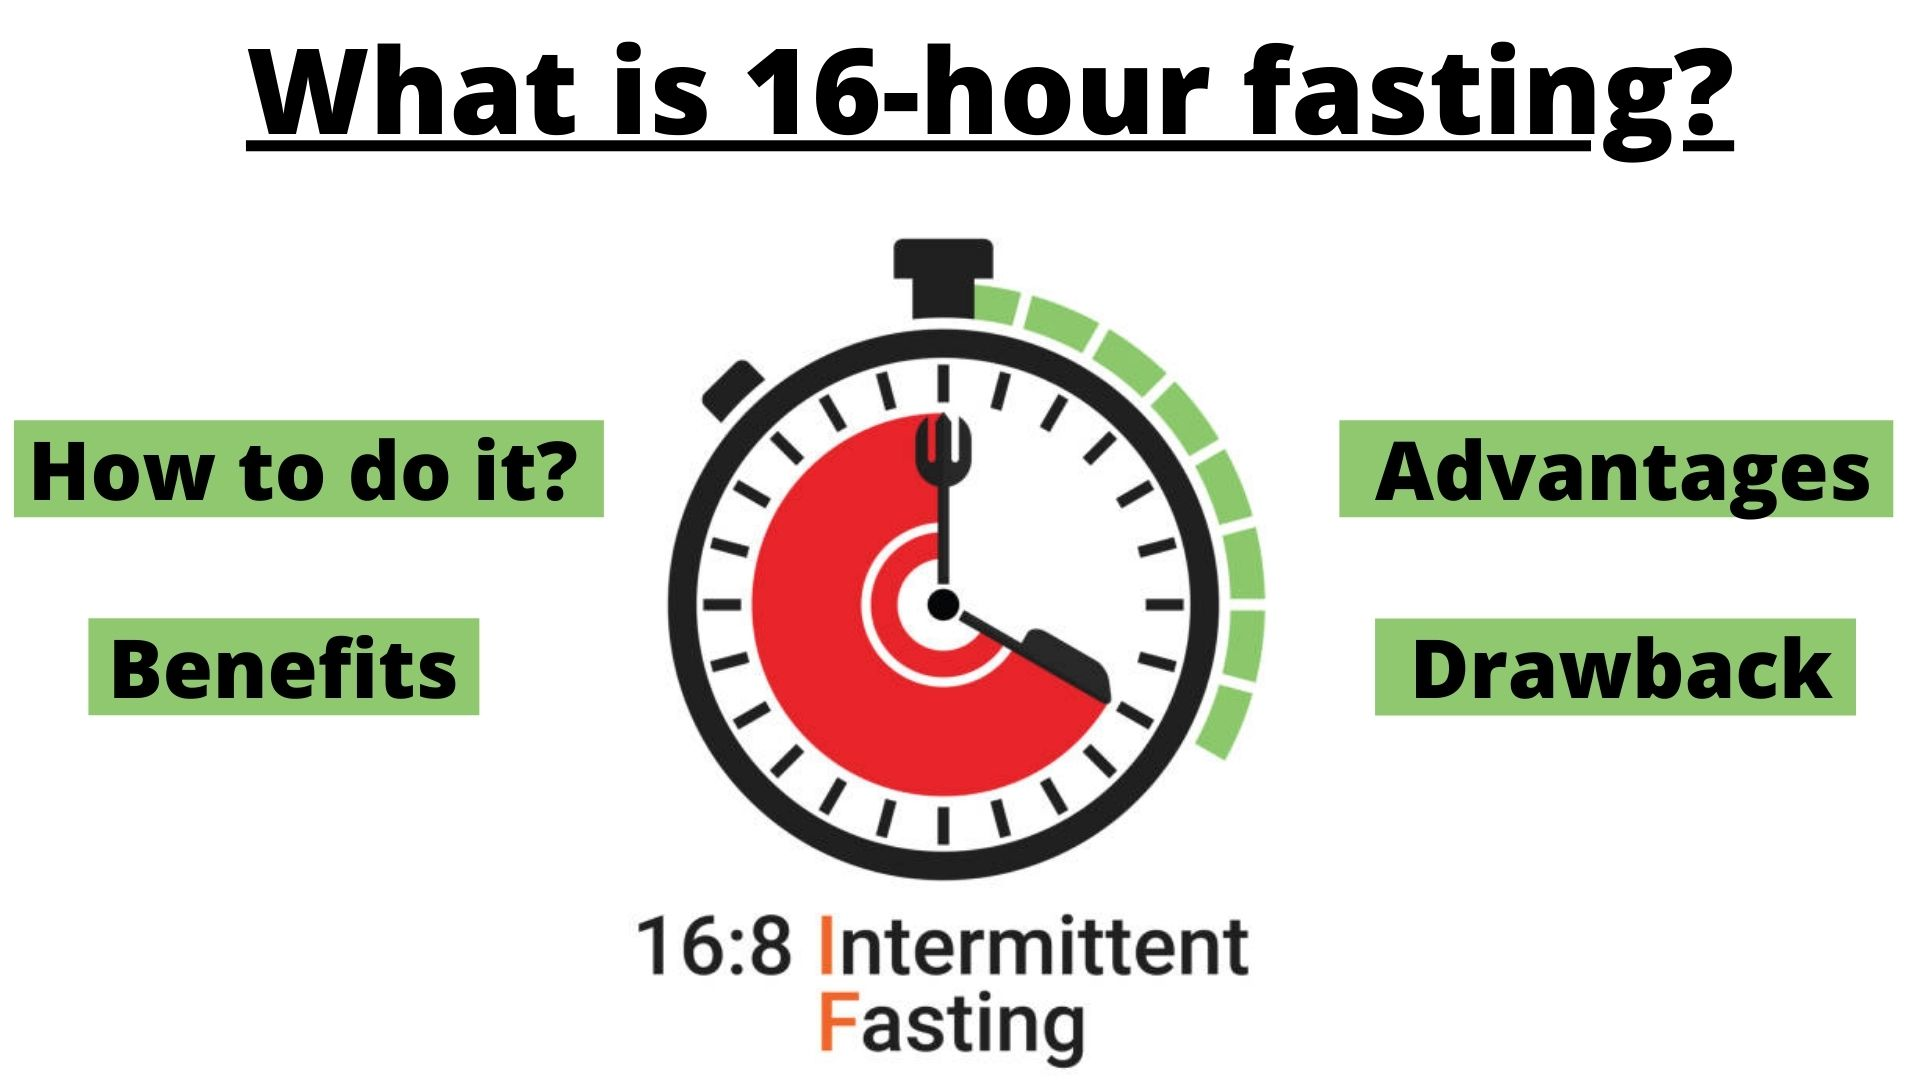 BENEFITS OF 16-HOUR FASTING